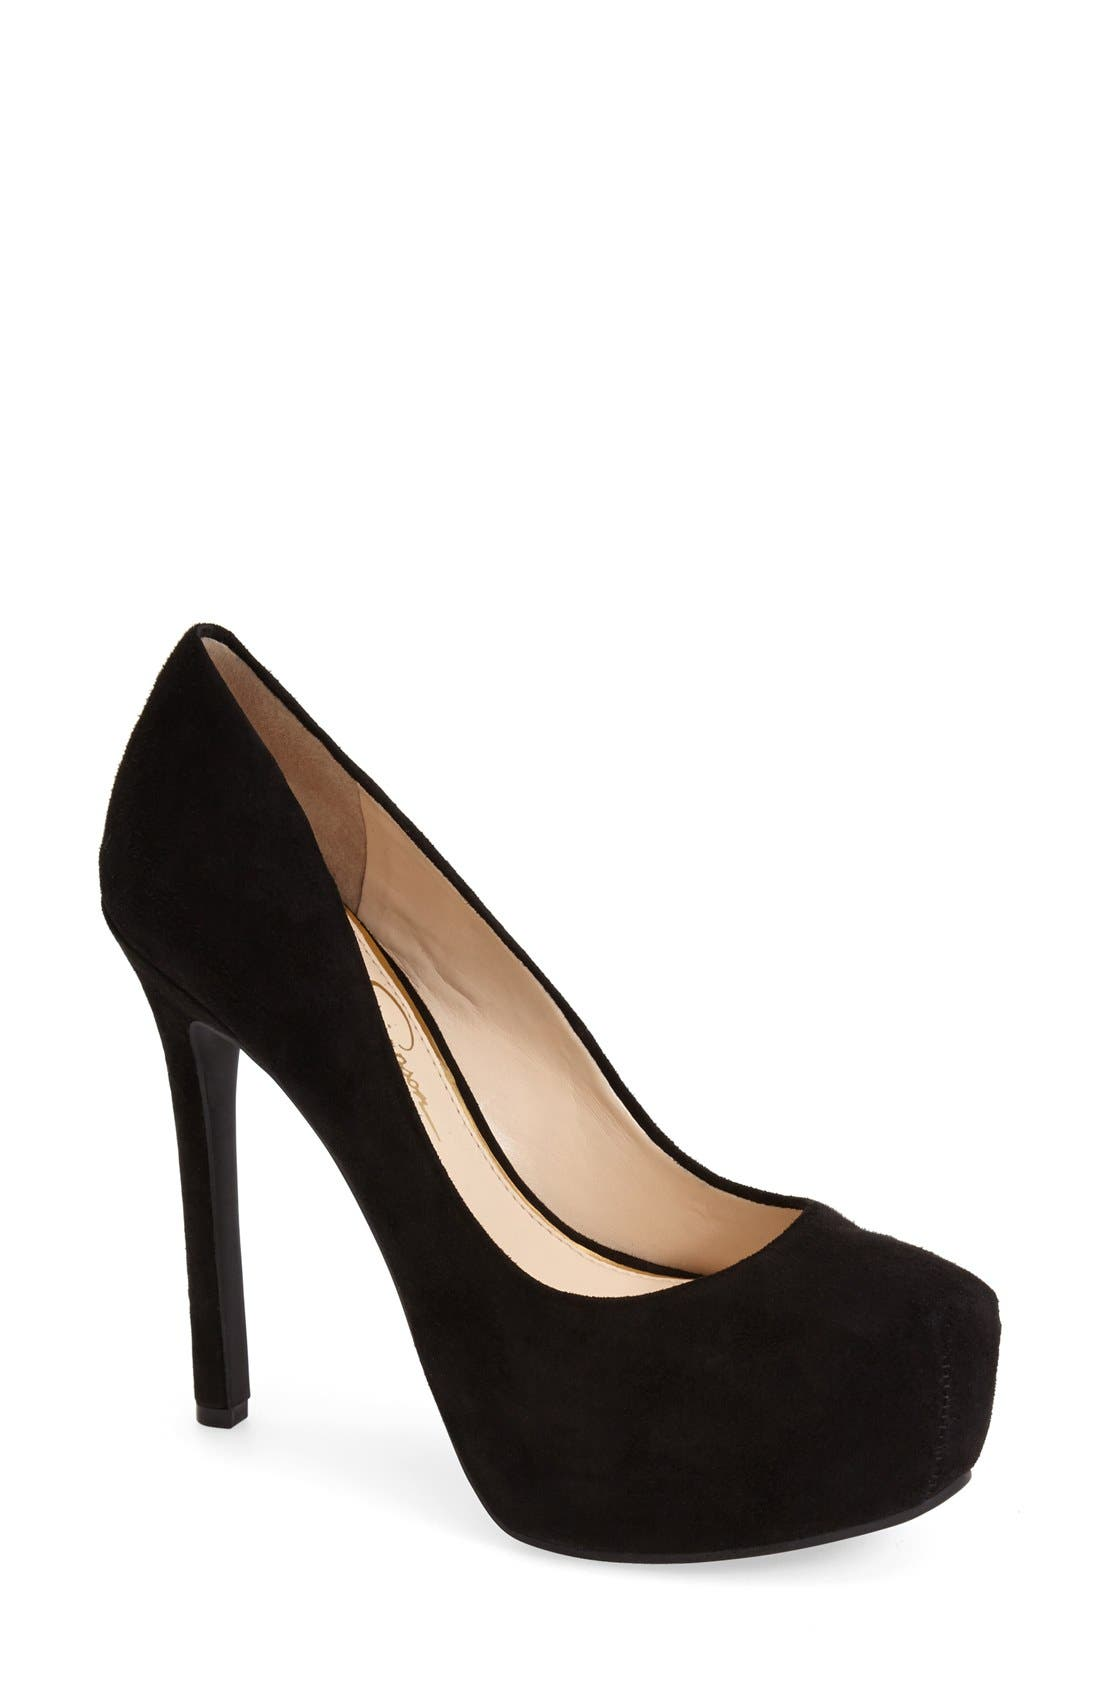 Alternate Image 1 Selected - Jessica Simpson 'Rebeca' Platform Pump (Women)